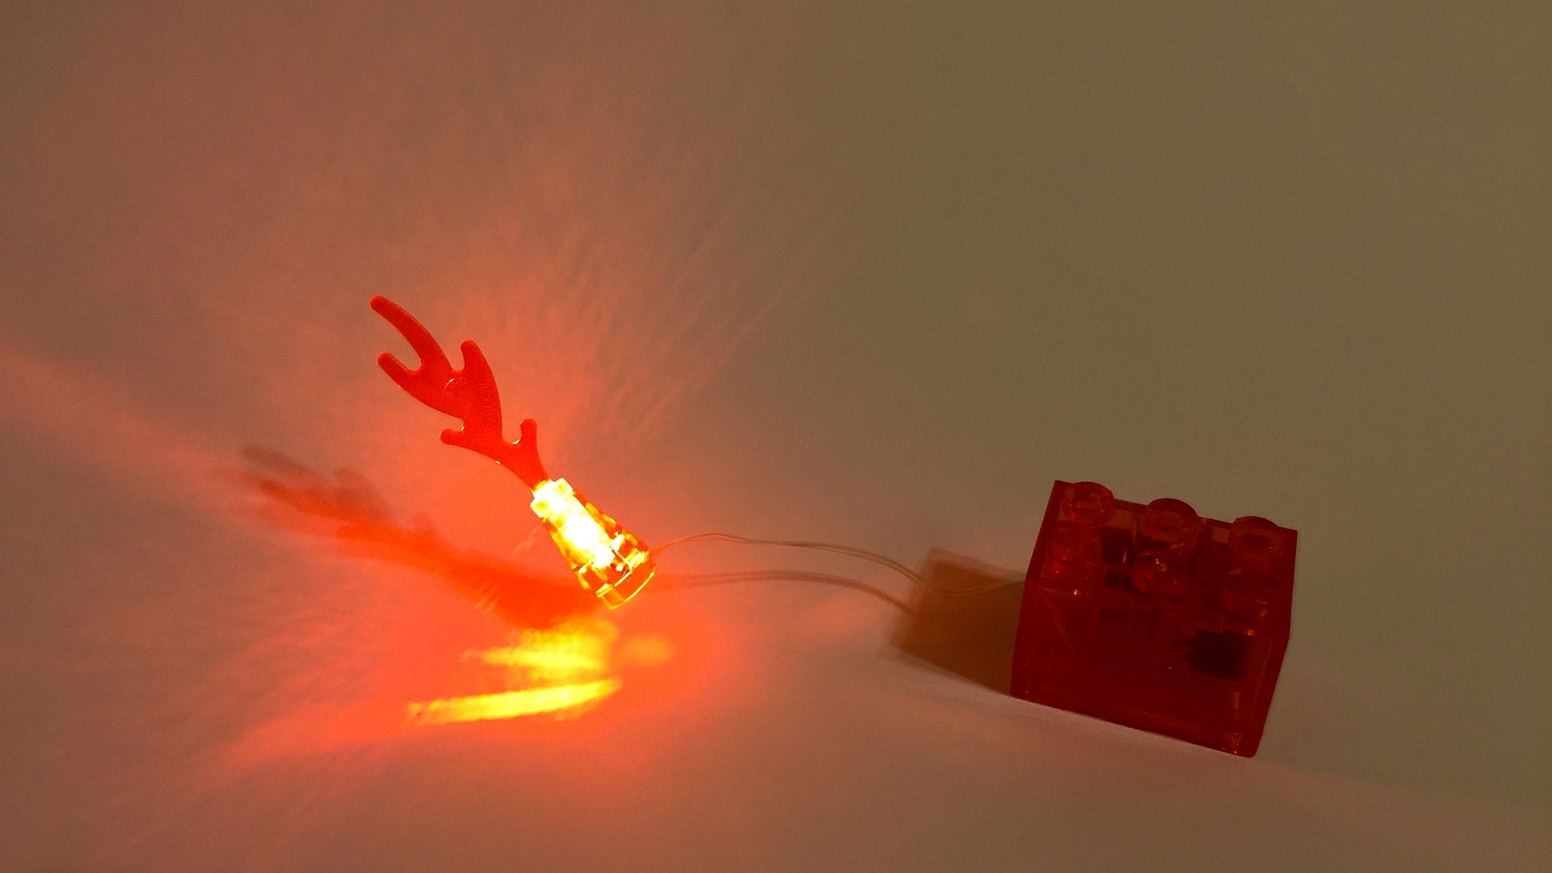 A Lego Fire light for Creator building and town.